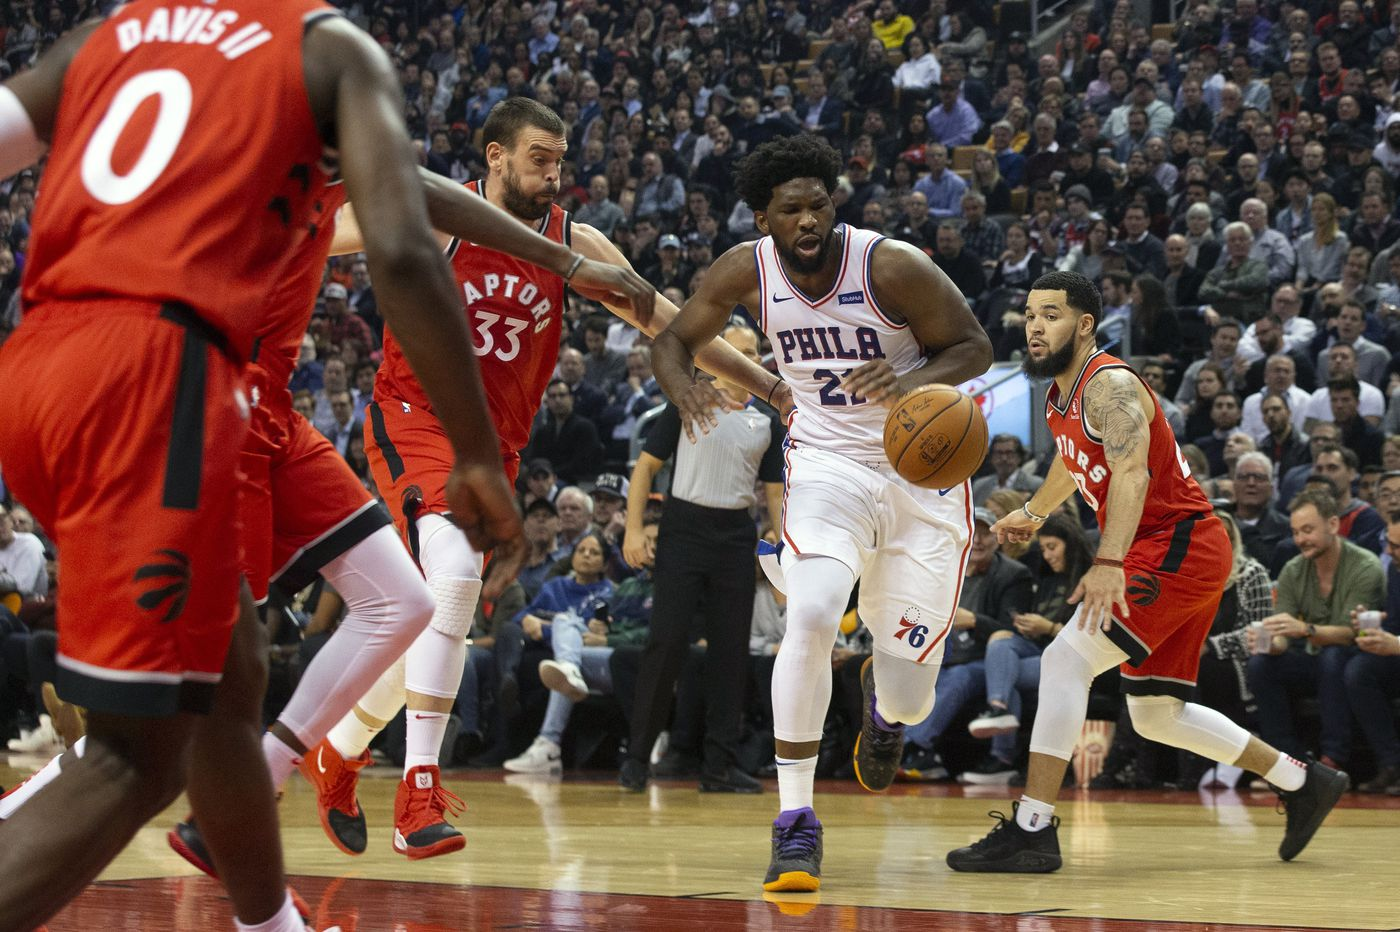 Sixers held back by mental mistakes, poor execution away from home